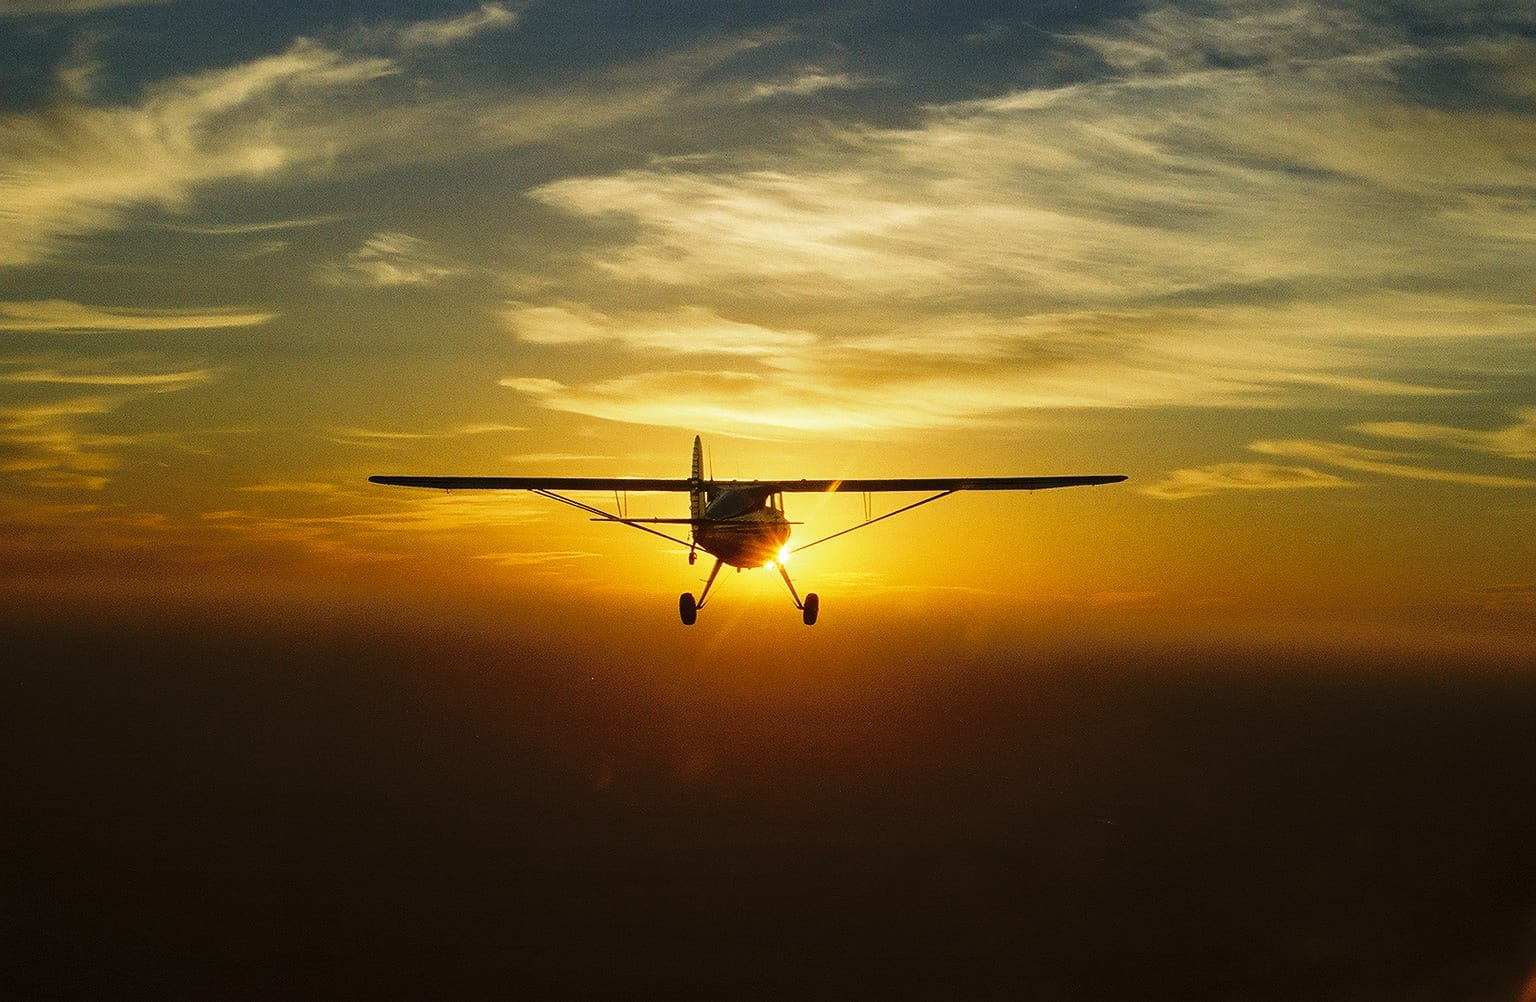 Airplane Full Hd Wallpaper Picture Of The Day Luscombe At Sunset General Aviation News